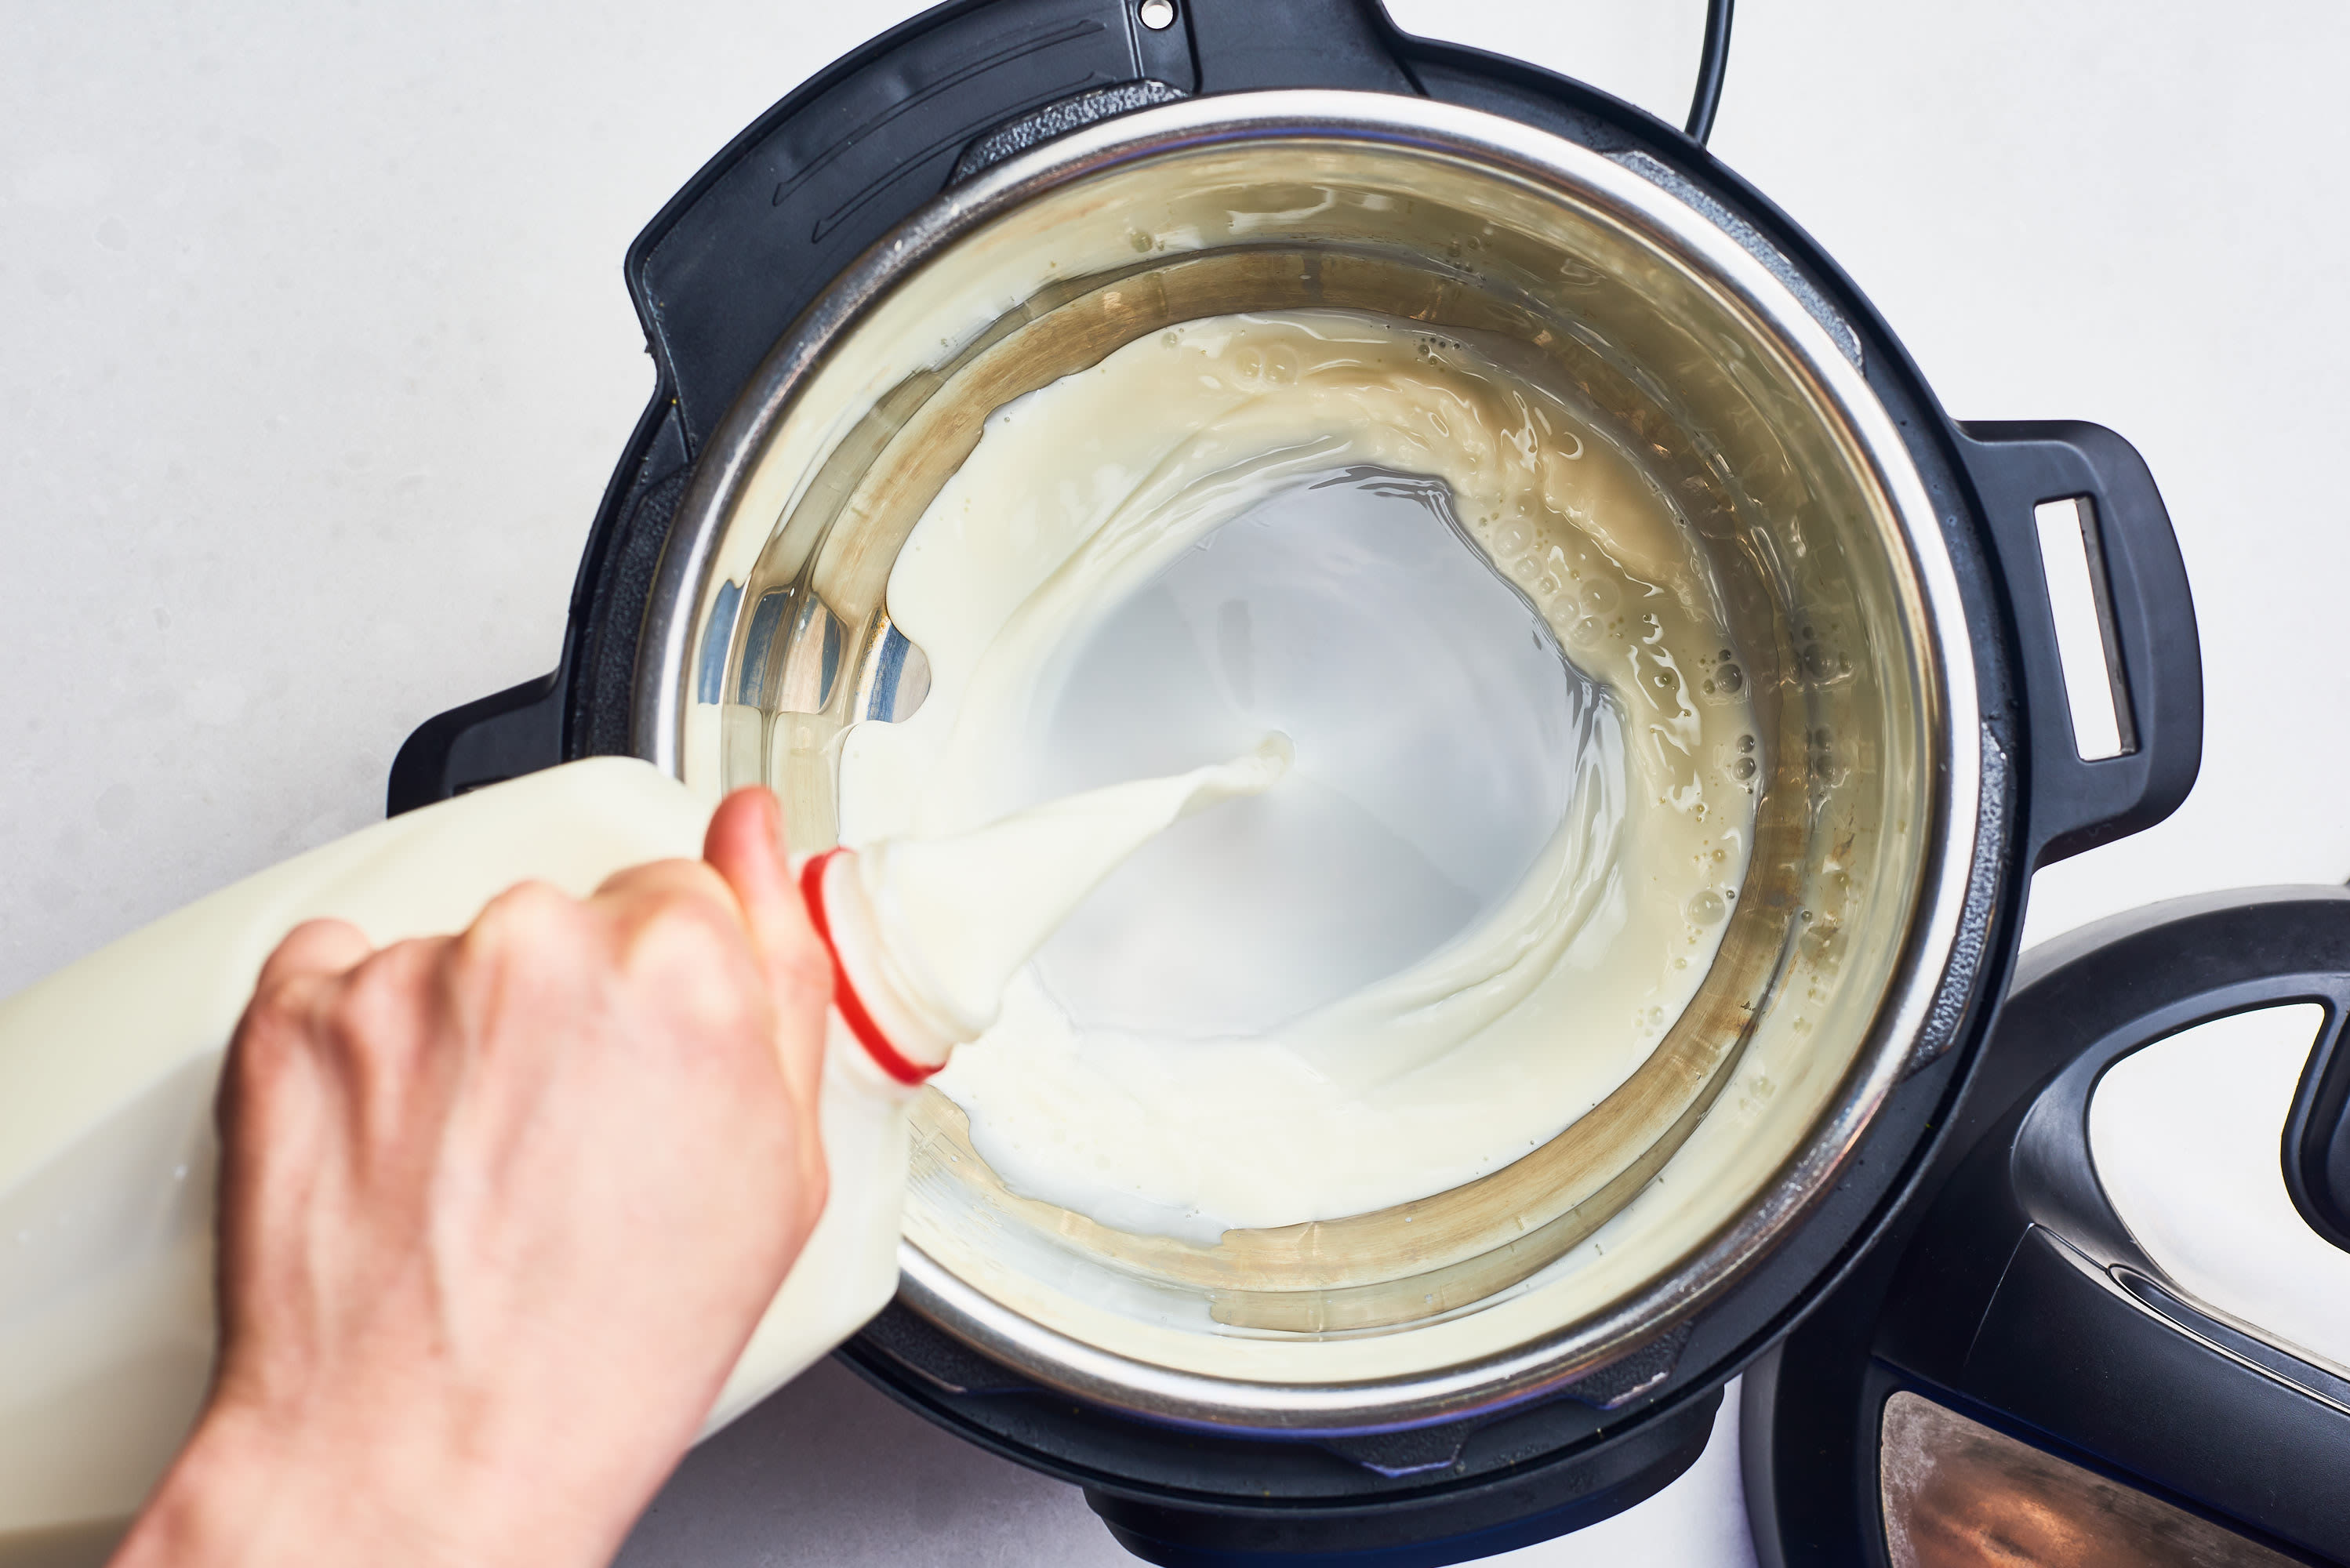 How To Make Instant Pot Yogurt, Step by Step